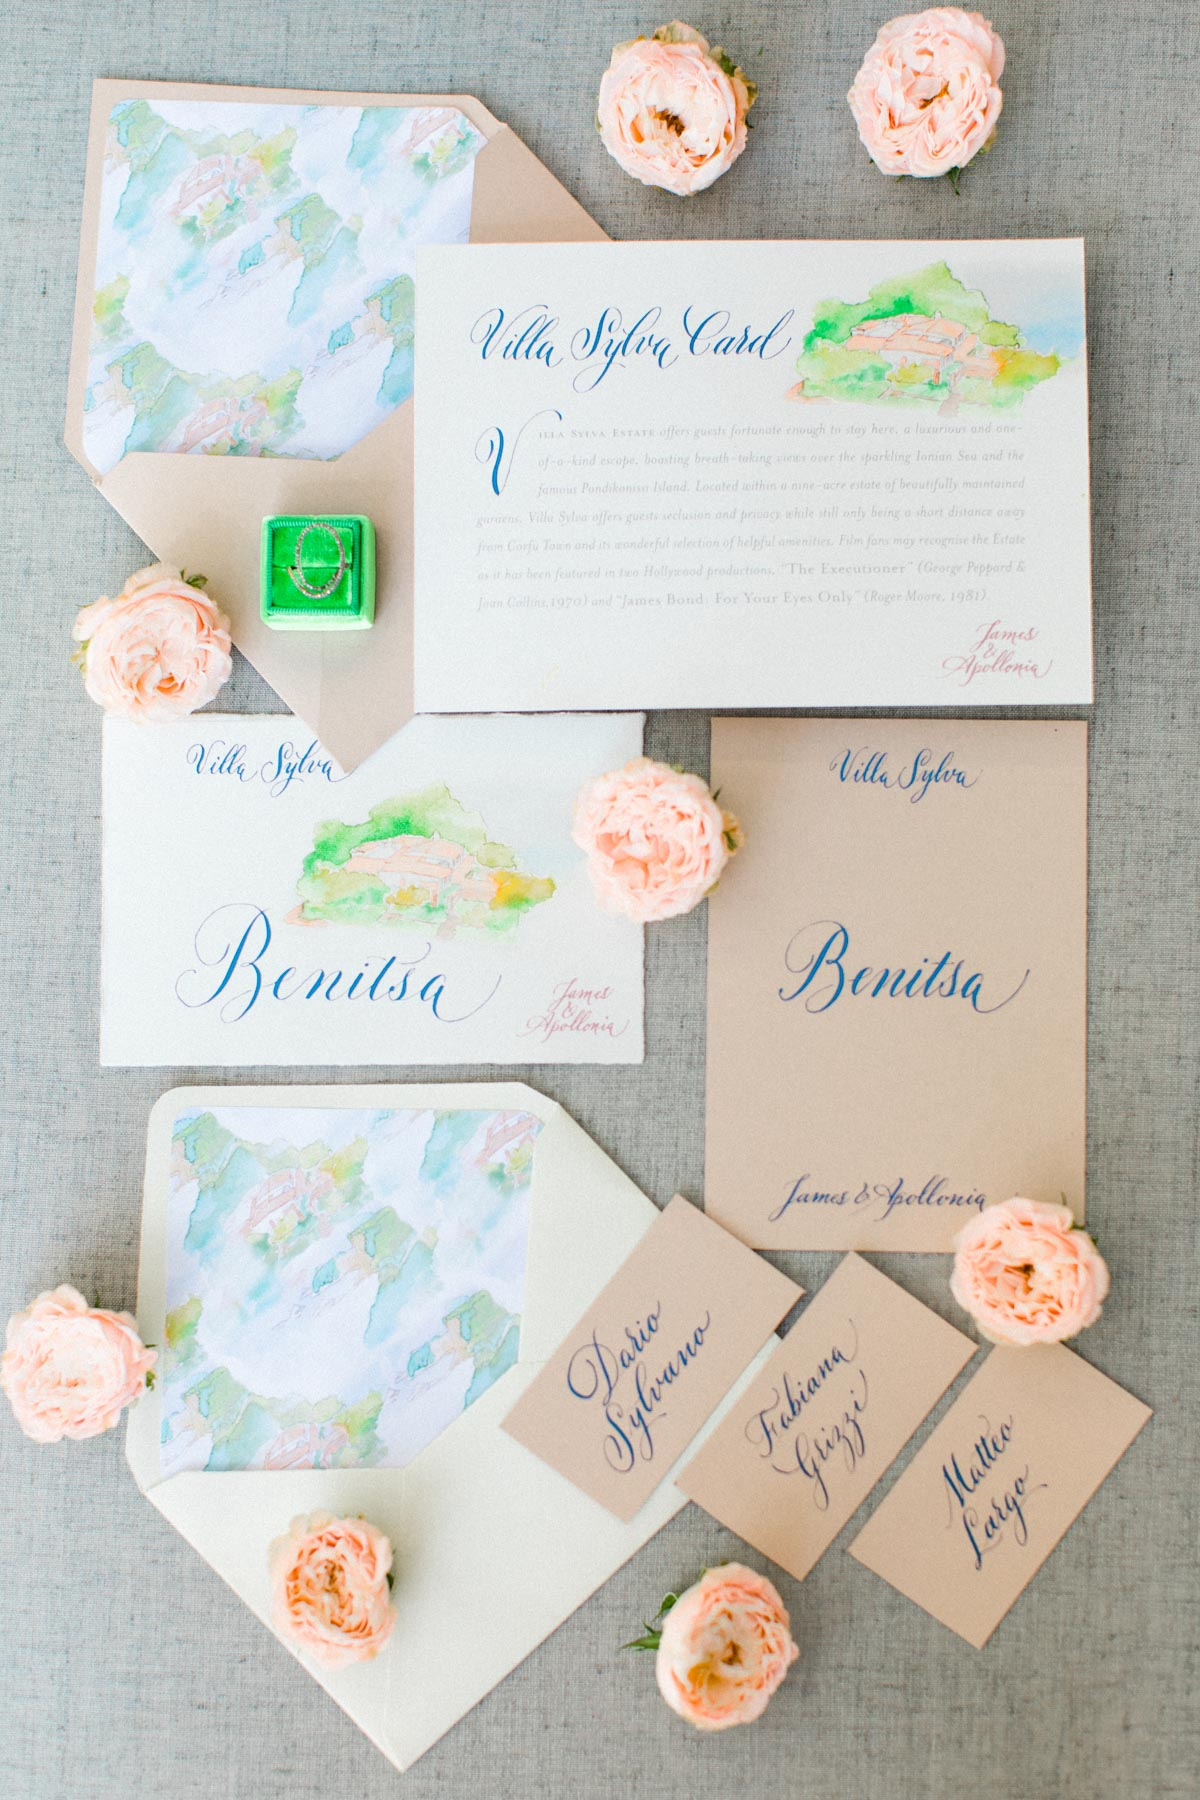 wedding invitation suite with whimsical watercolor accents